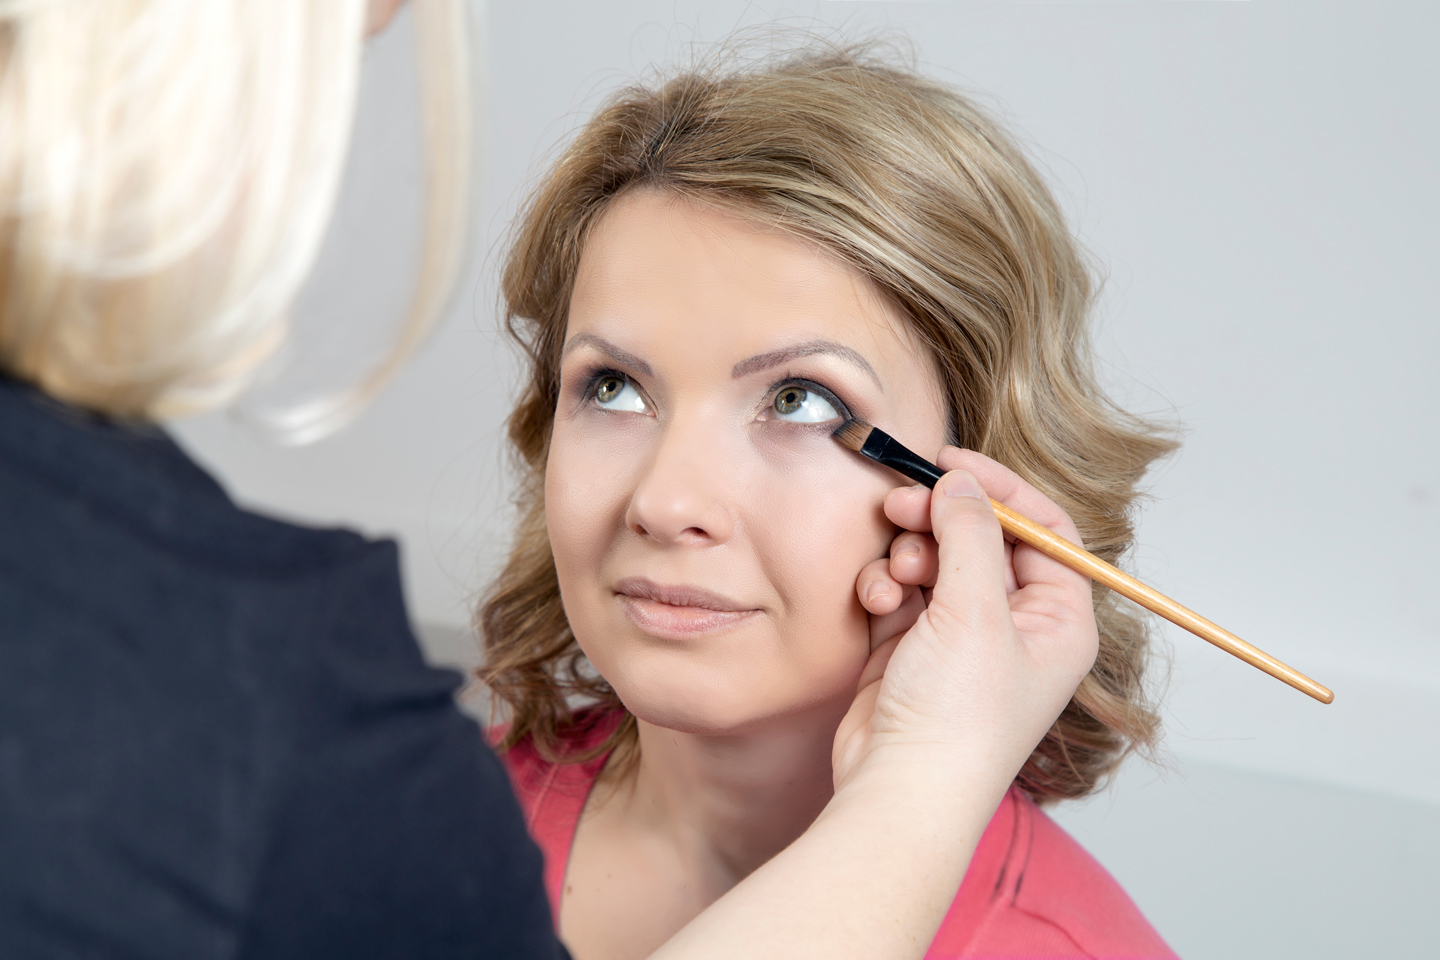 Make up artist working